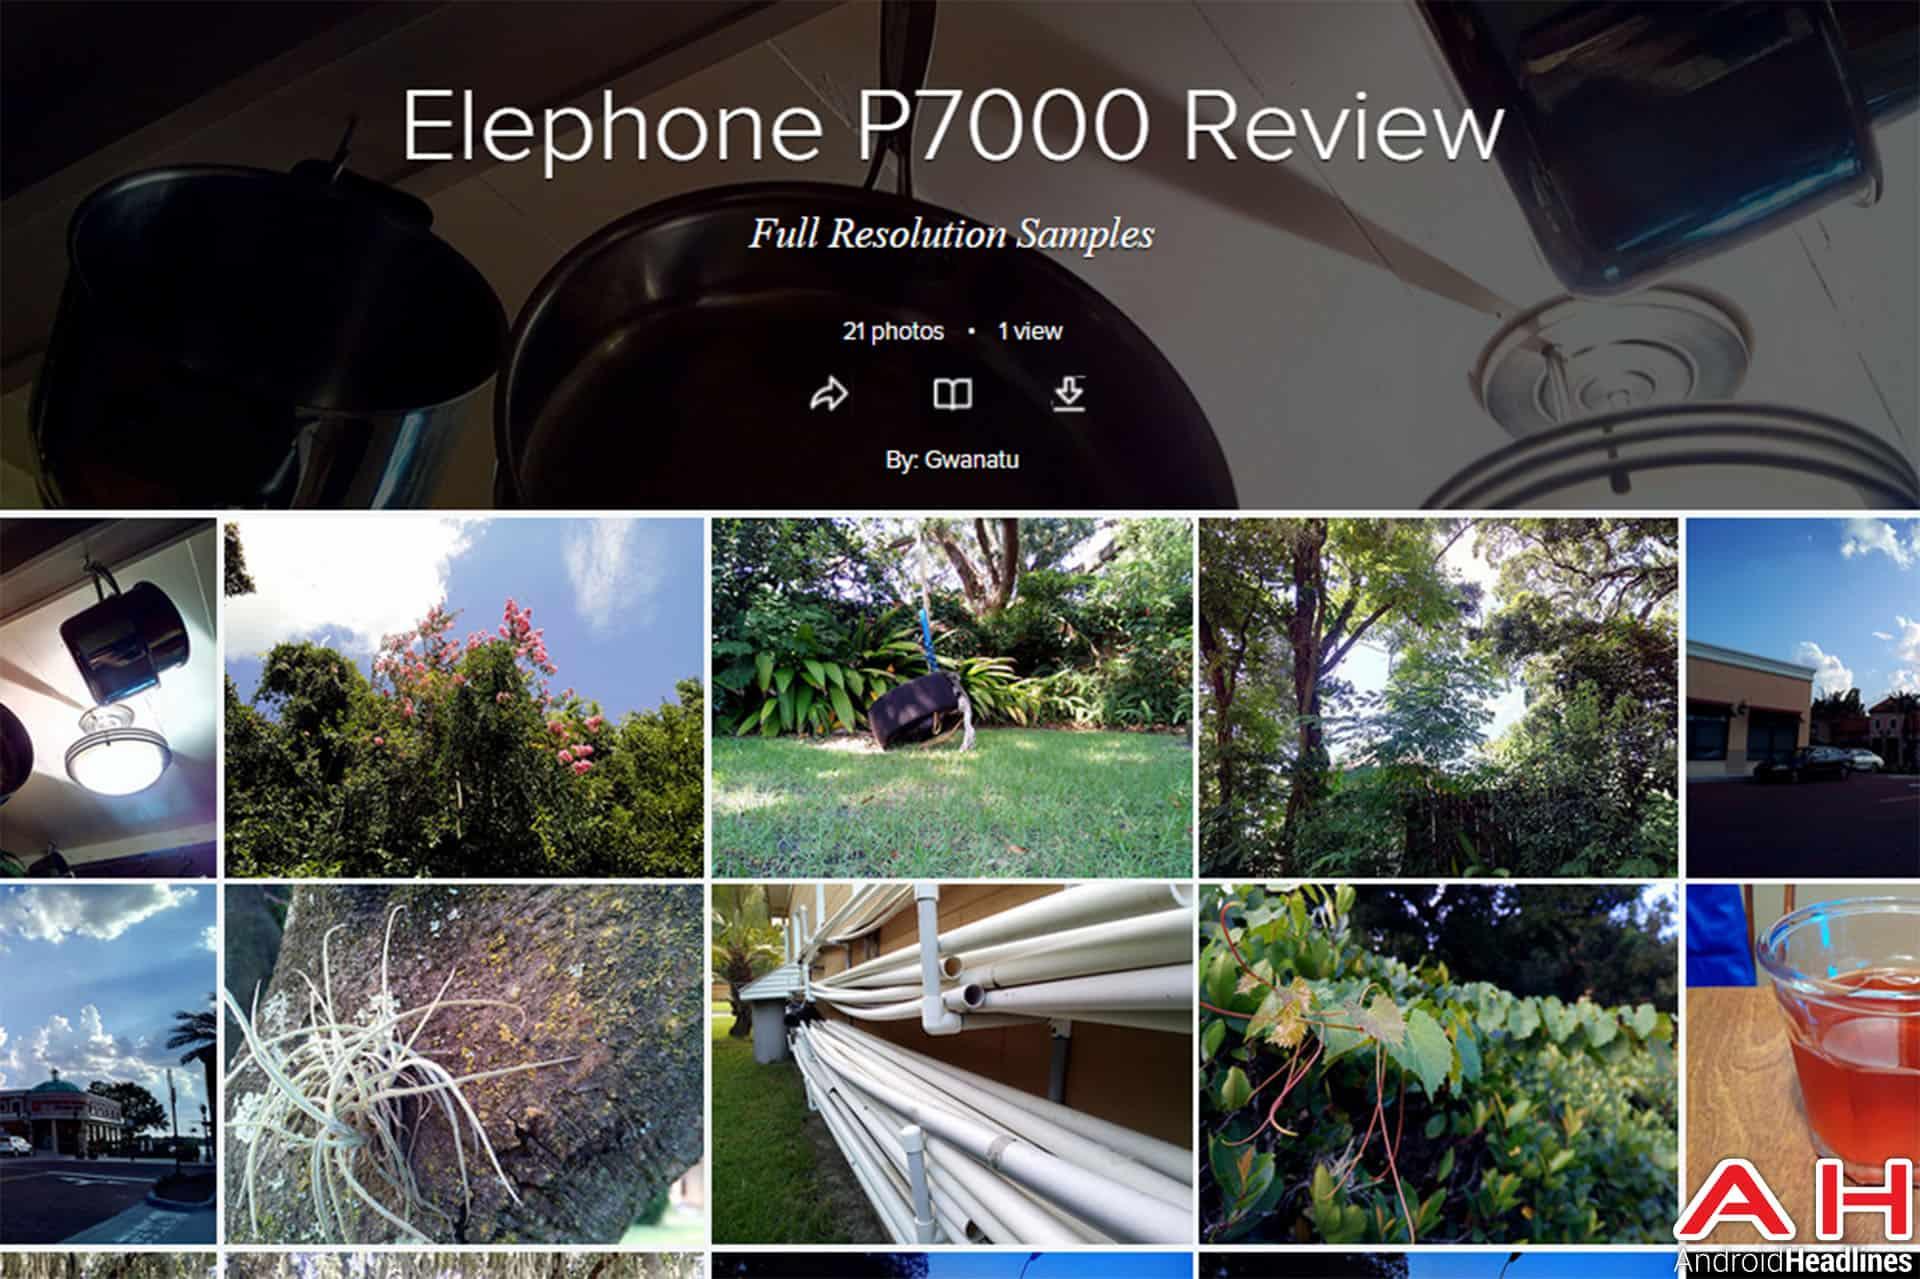 Elephone-P7000-Review-AH-Flickr